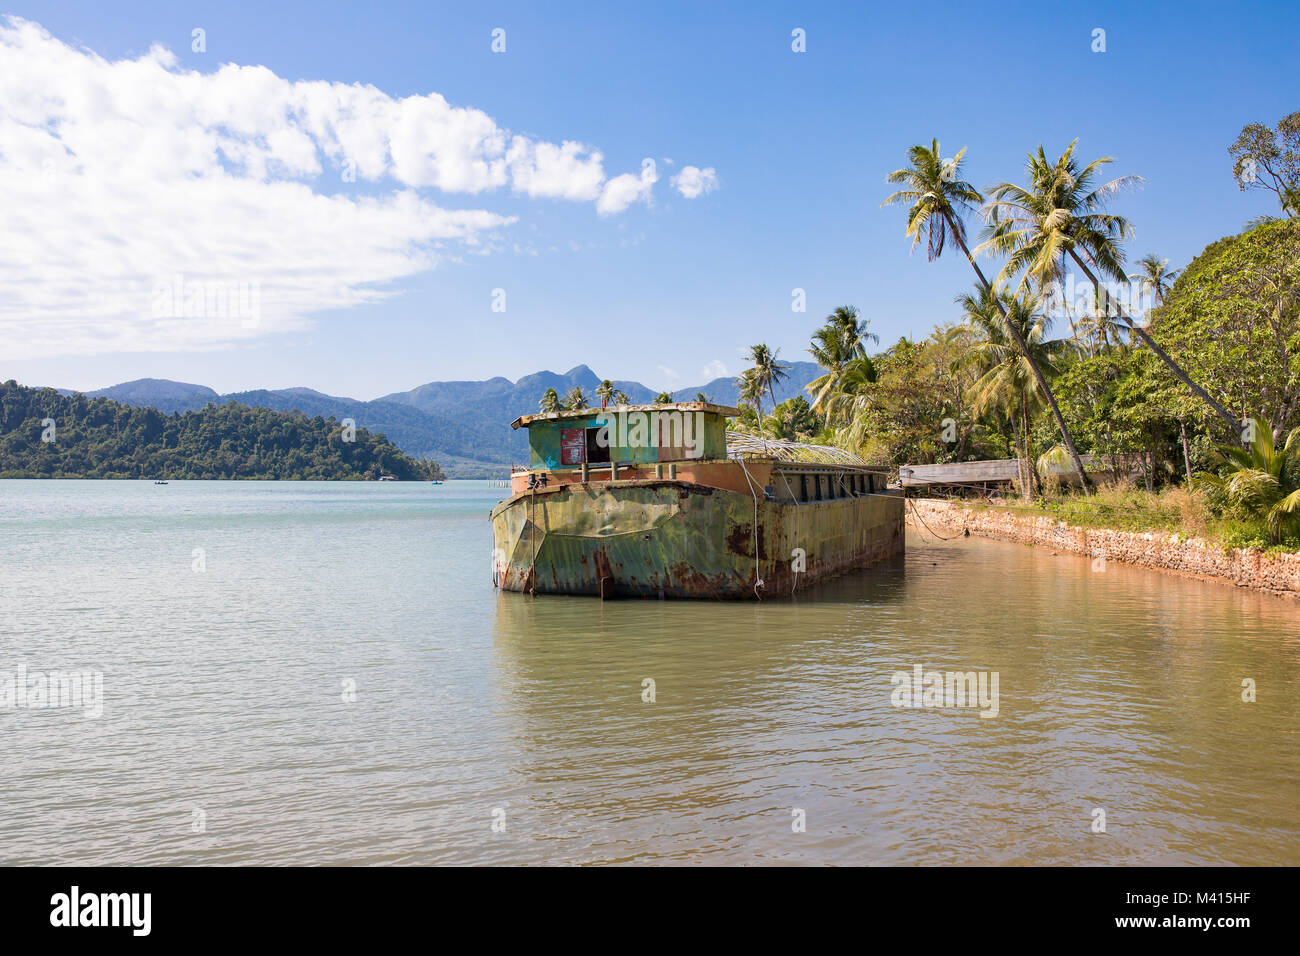 Abandoned ship wreck on sea, Southern coast of the island Koh Chang, Thailand - Stock Image